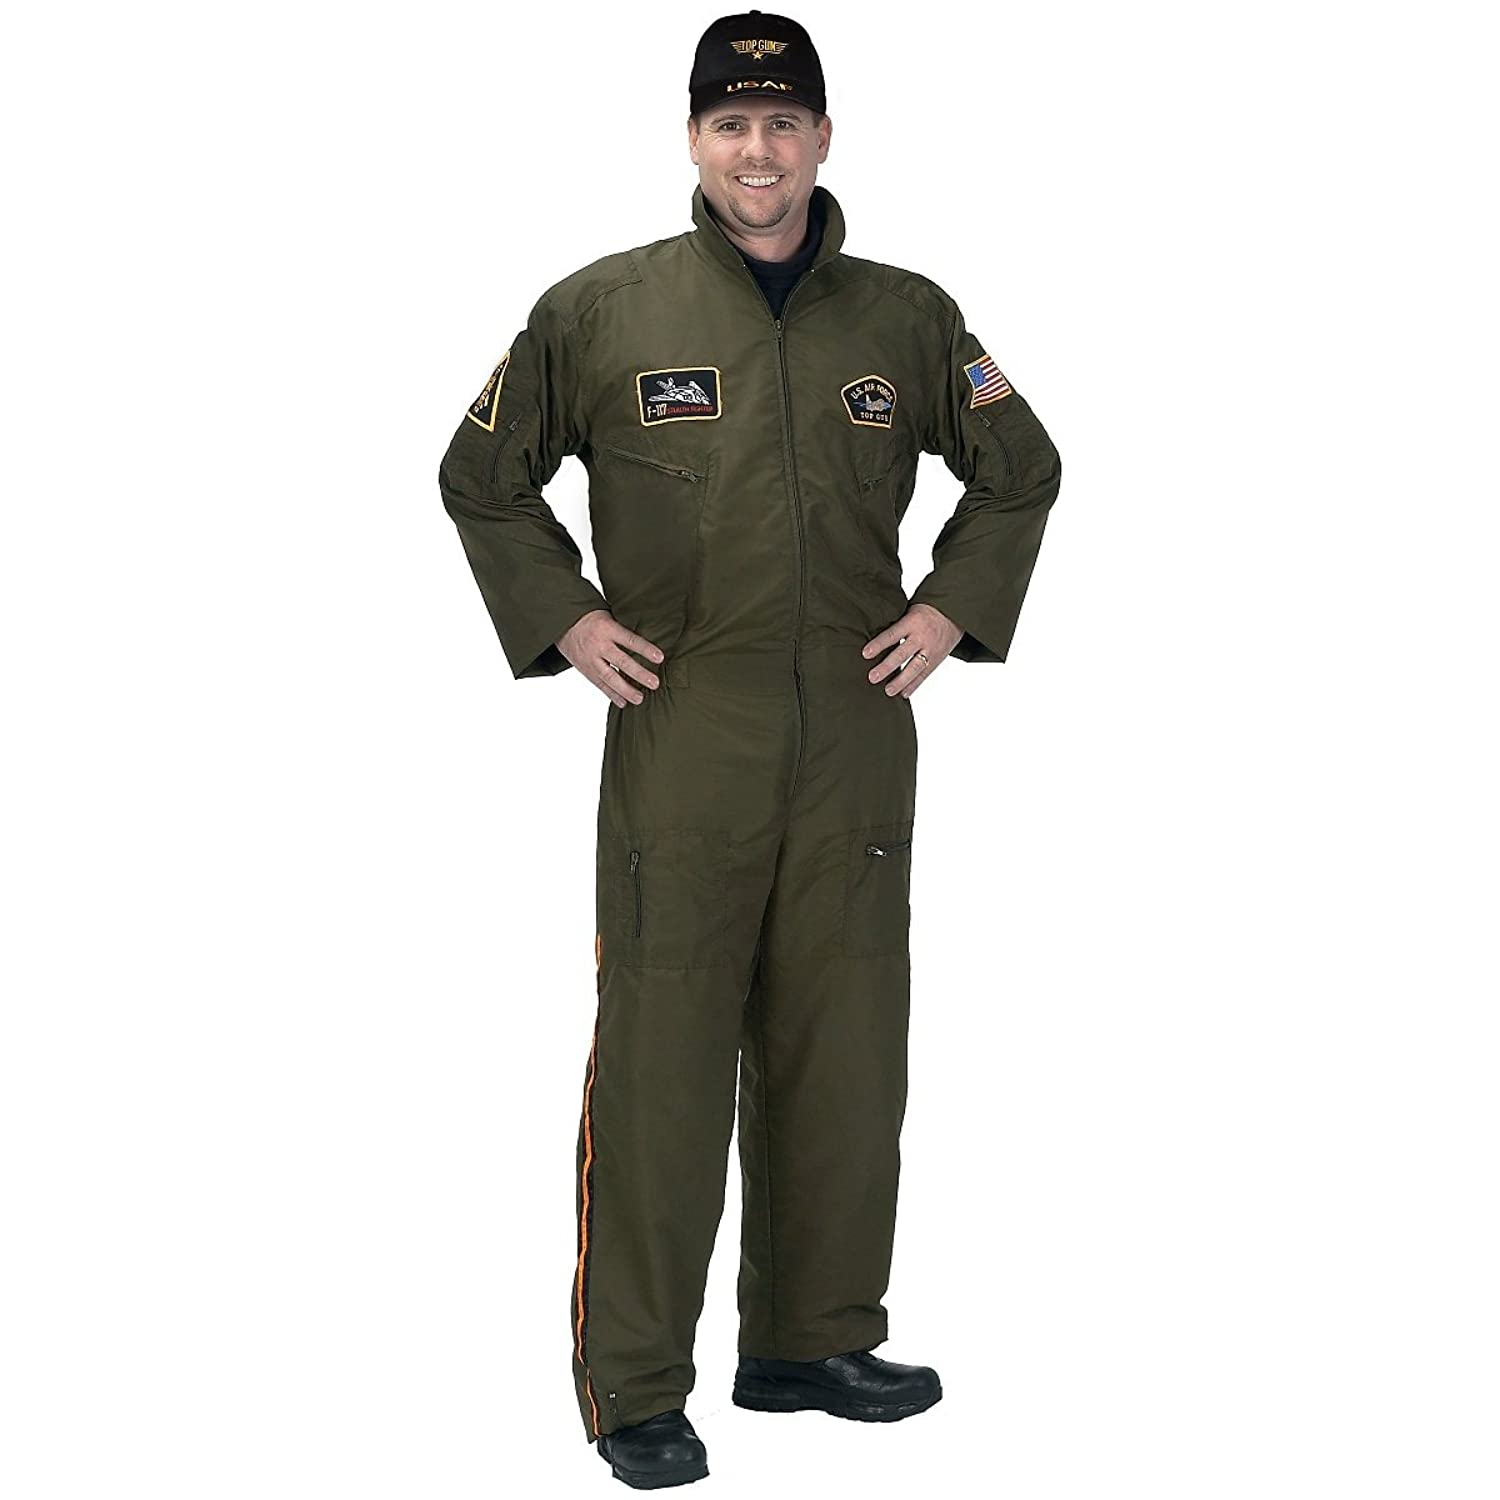 sc 1 st  Amazon.com & Amazon.com: Armed Forces Pilot Suit Adult Costume - Large: Clothing